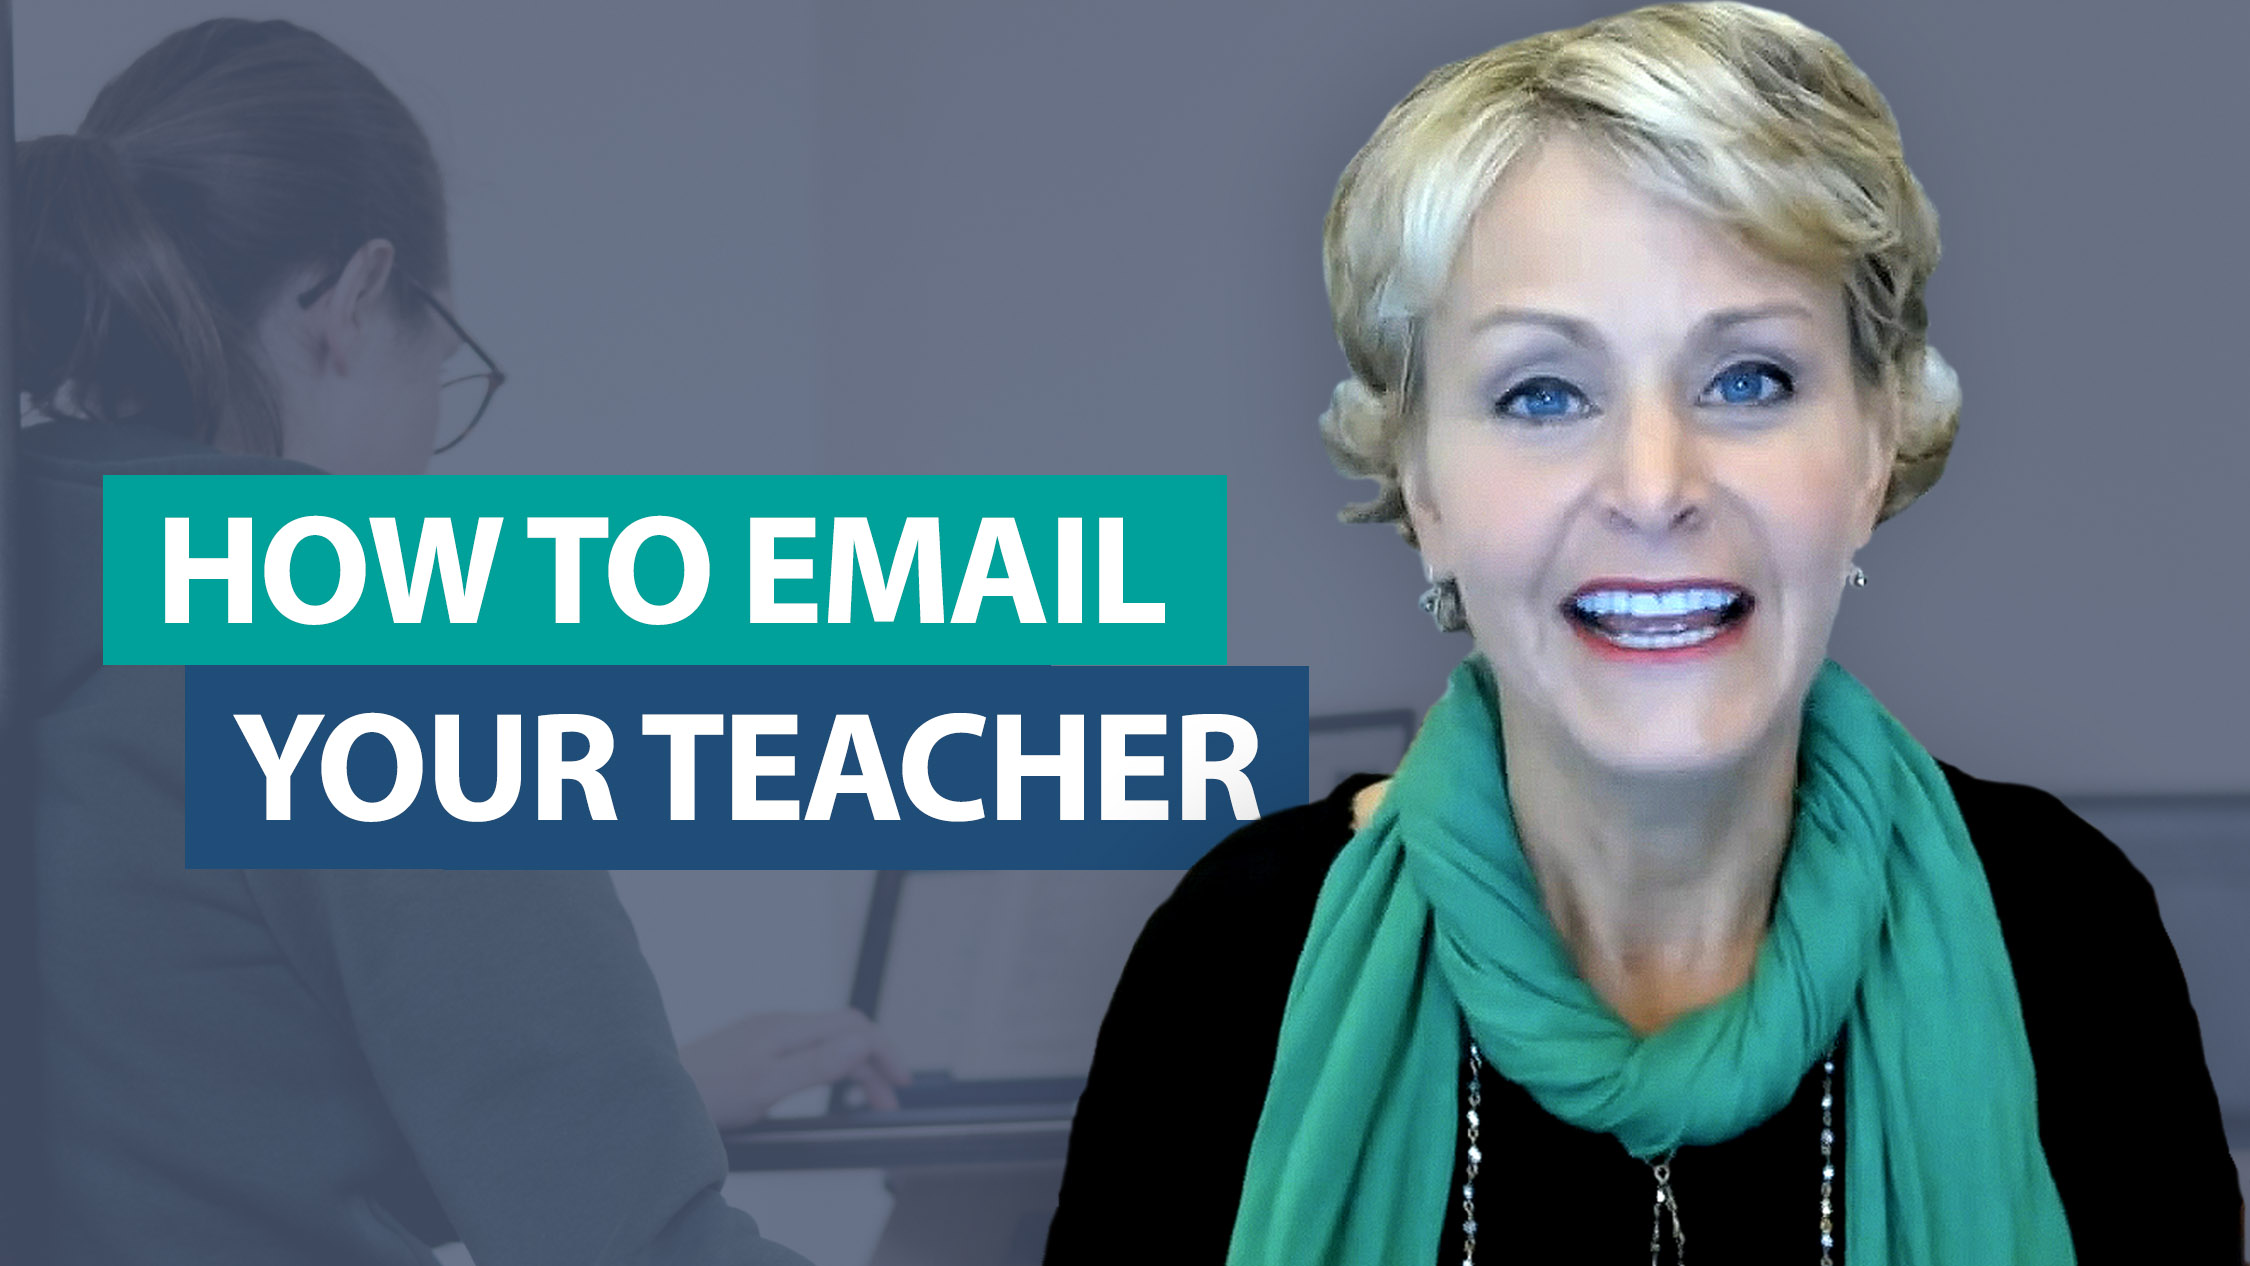 How do I teach my students to write effective emails?